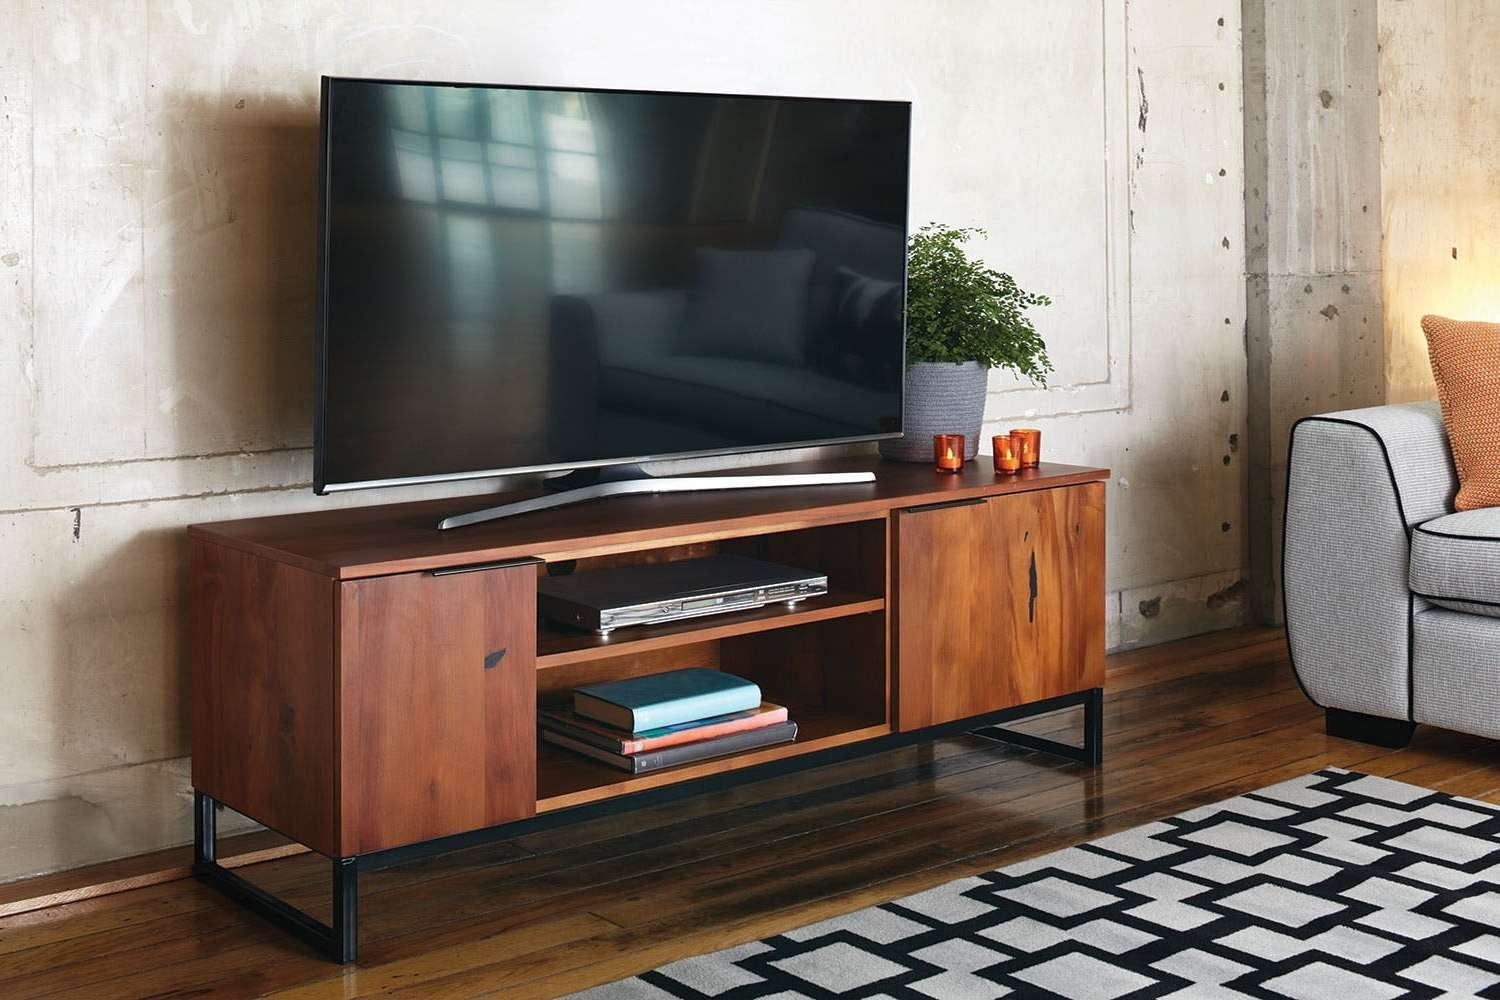 Supreme Flat Screen Narrow Tv Stand And Magazine Shelf Brown Pertaining To Honey Oak Tv Stands (View 6 of 15)